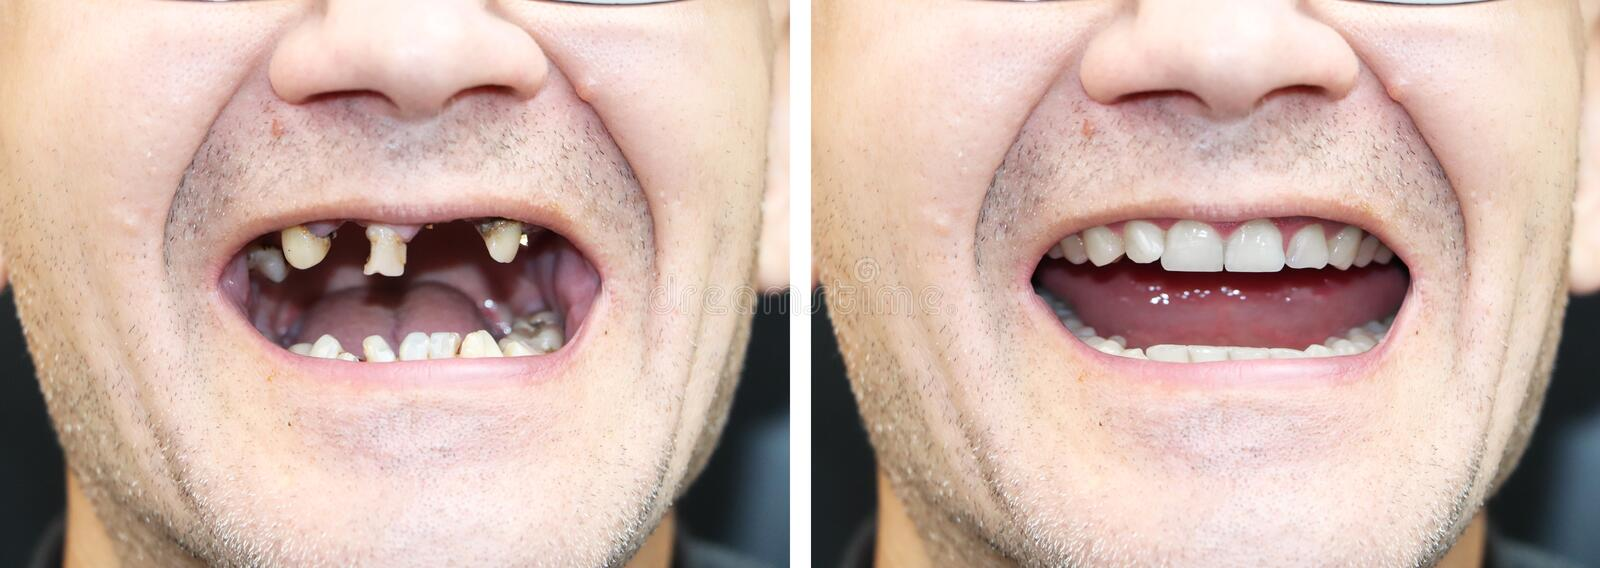 The patient at the orthodontist before and after the installation of dental implants. Tooth loss, decayed teeth, denture, veneers royalty free stock images